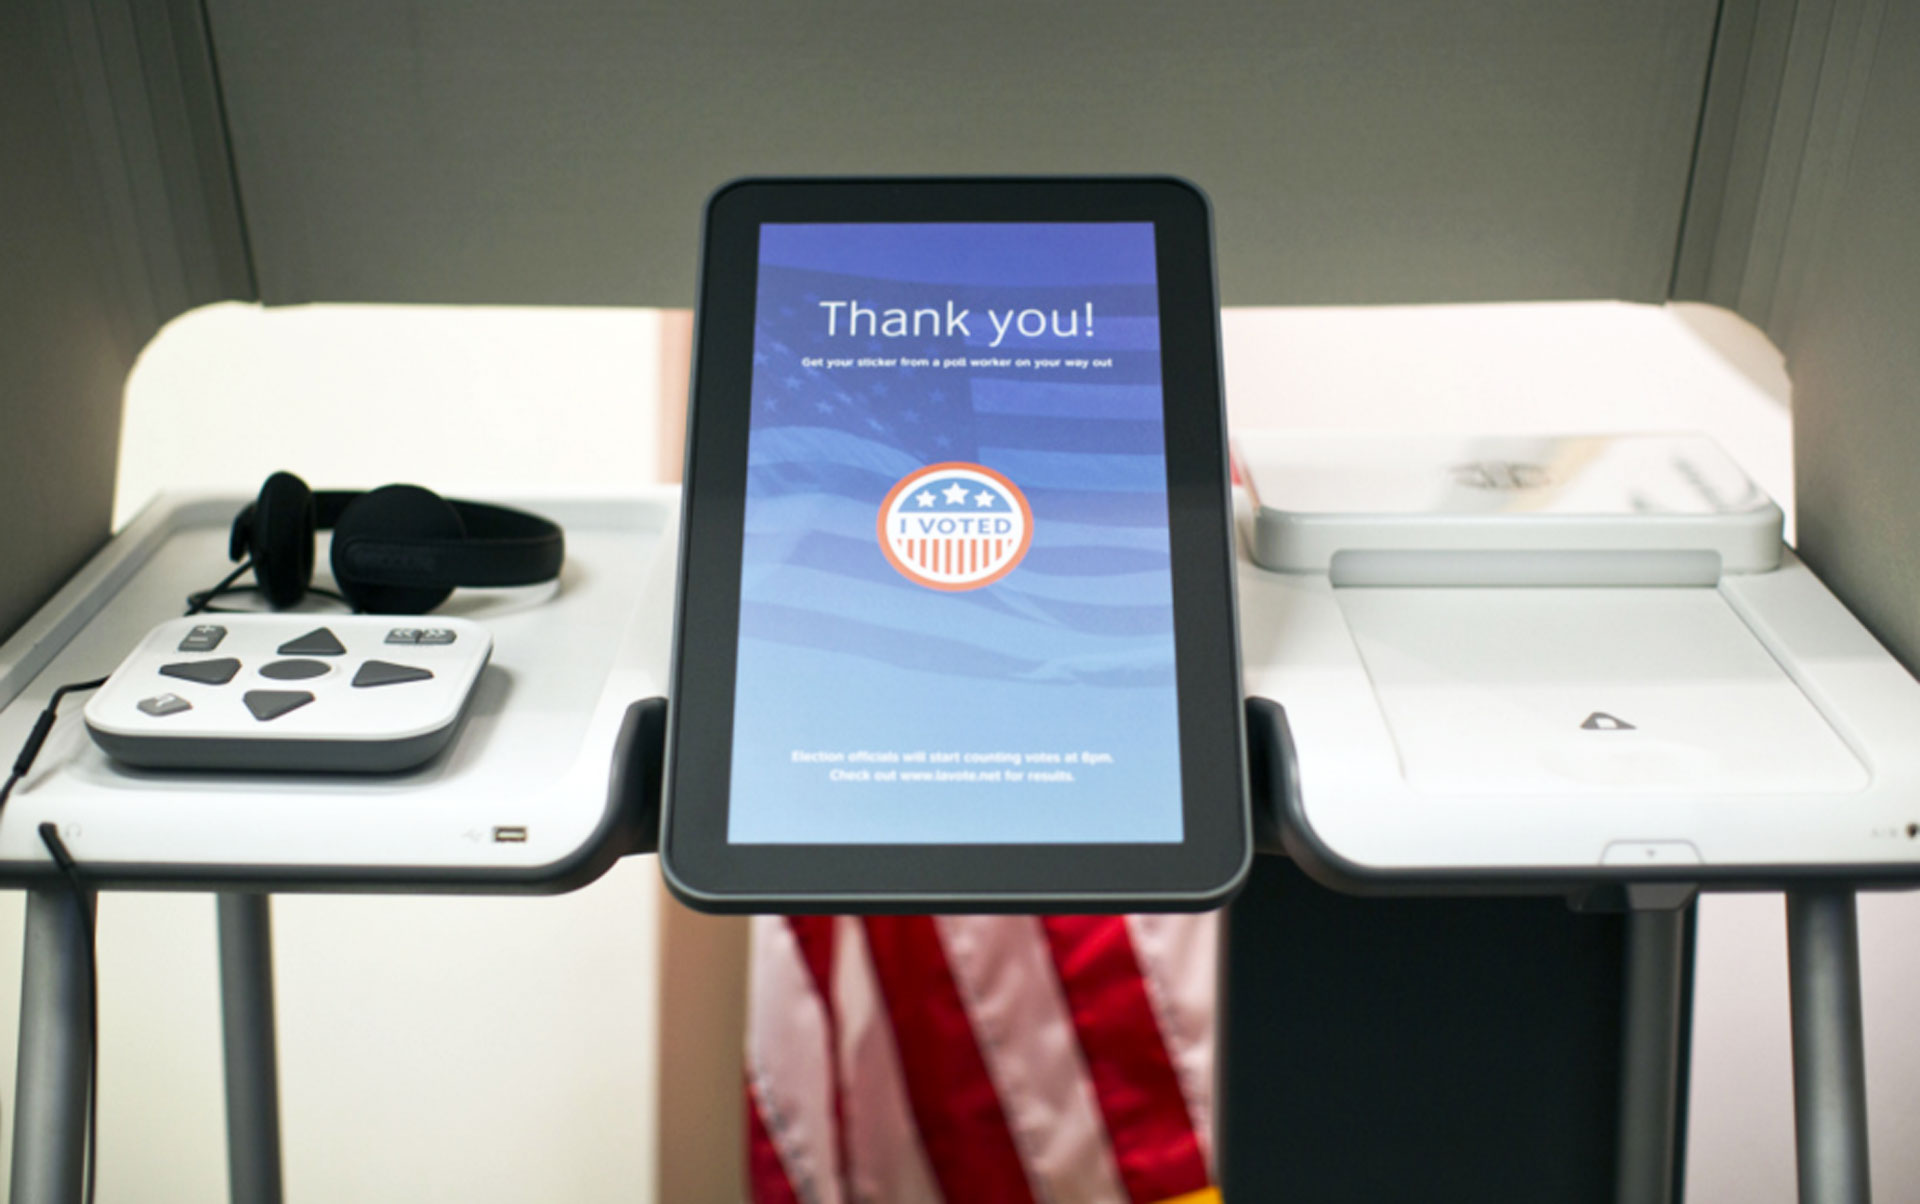 A non-functioning prototype shows what new ballot-marking devices might look like inside the Los Angeles County Registrar-Recorder/County Clerk's Office on Monday, Oct. 26, 2015.